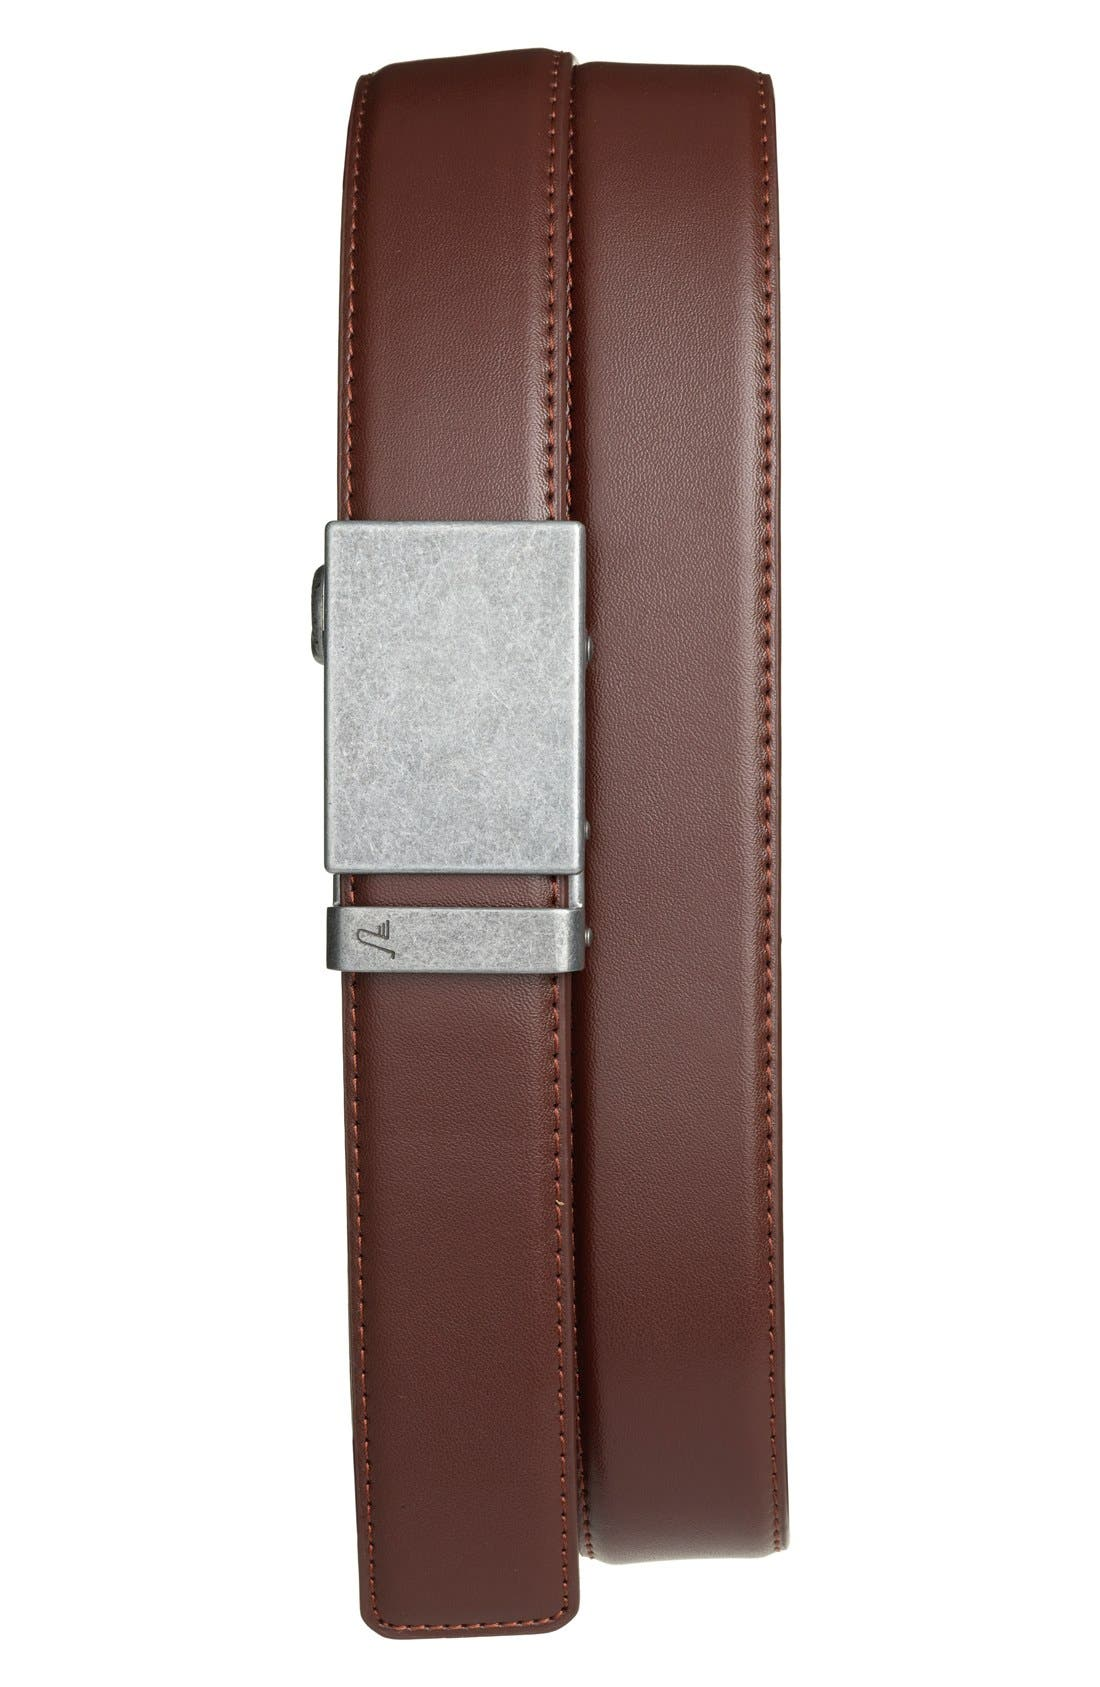 Mission Belt 'Iron' Leather Belt